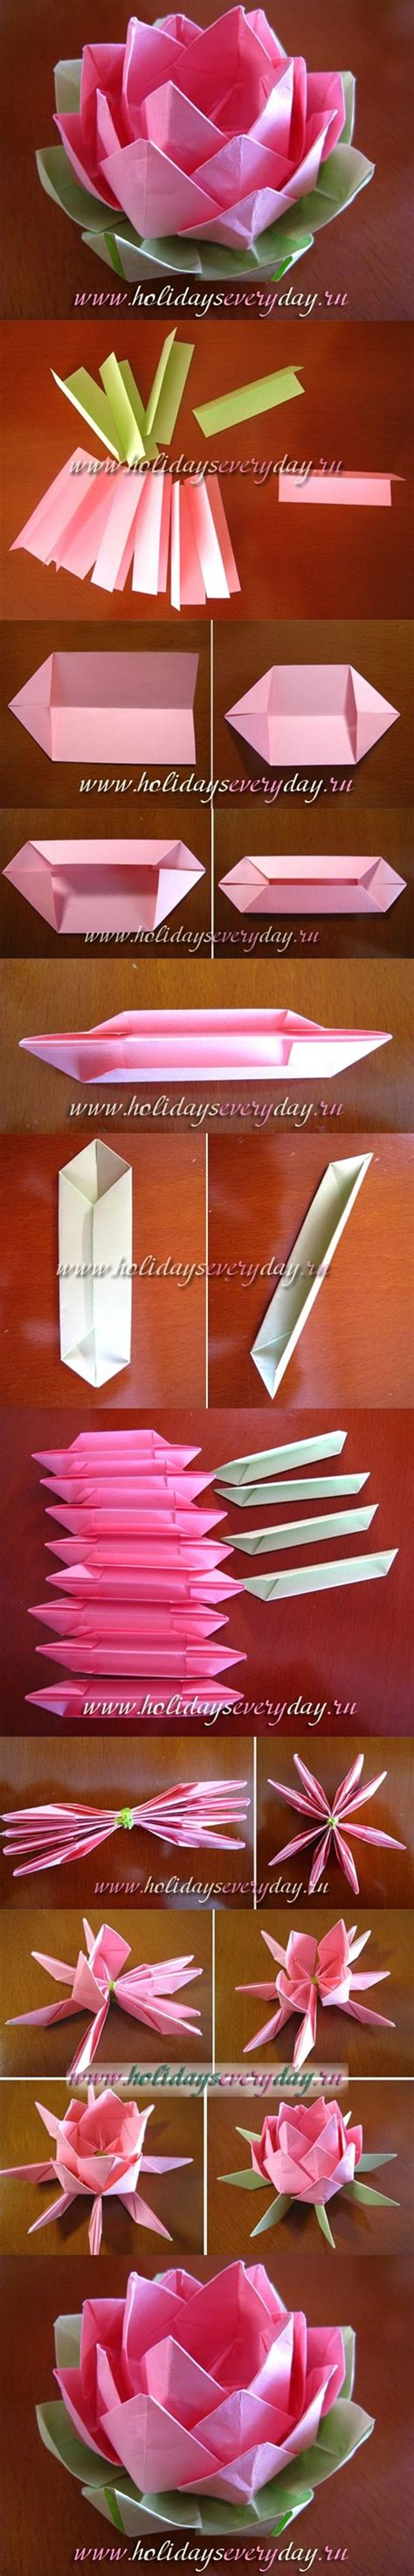 Paper Folding Lotus - sparkle 36 how to make origami flowers pumpernickel pixie